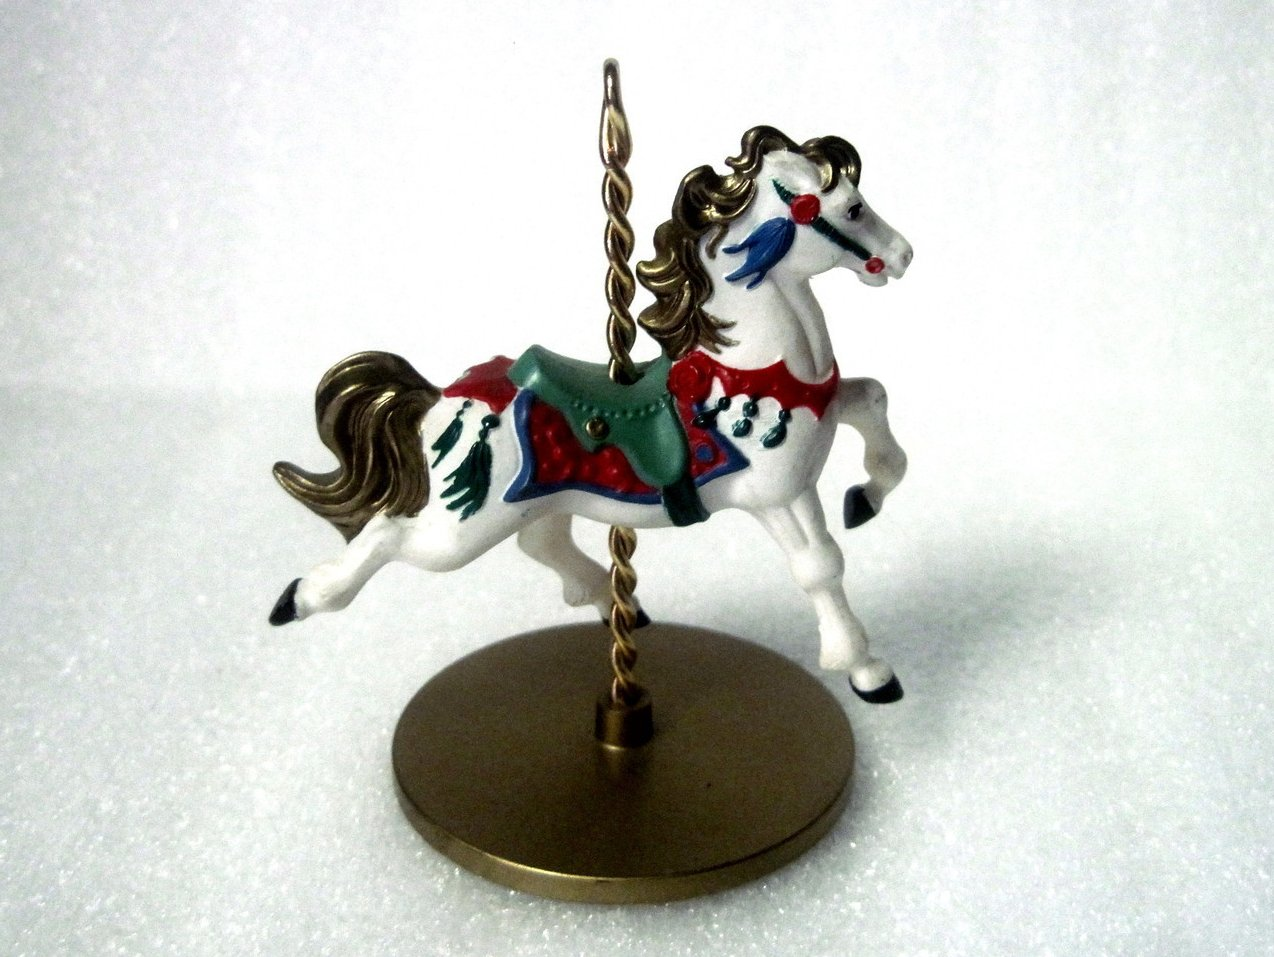 Snow Christmas Carousel Horse Series 1989 Hallmark Ornament